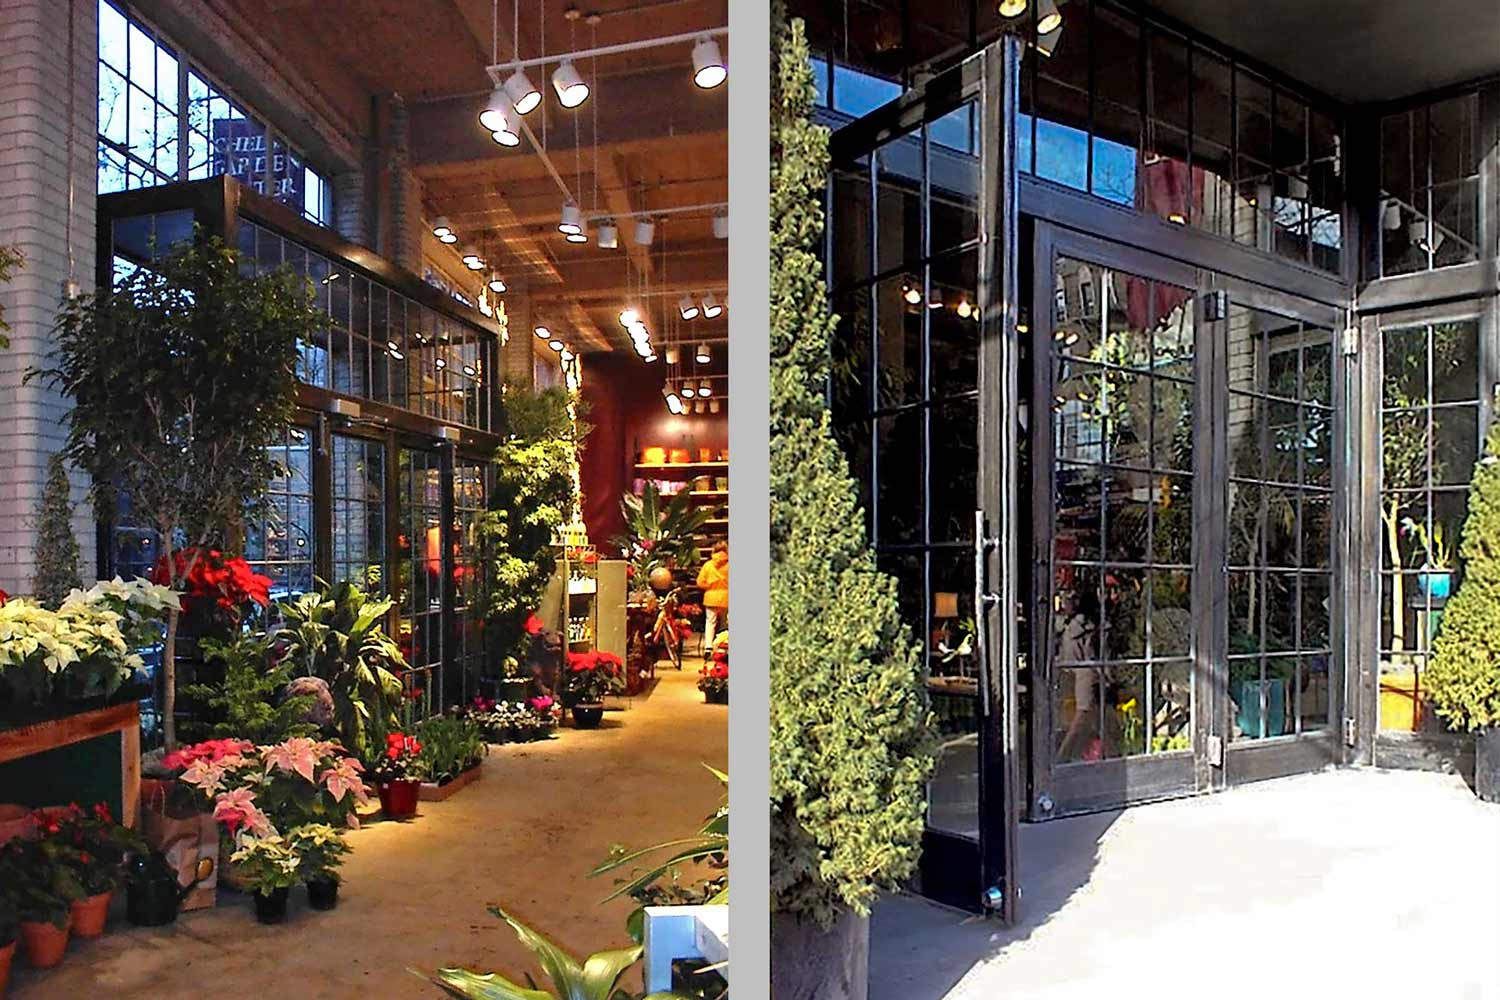 OCV's gut renovation of raw industrial space resulted in a lavish retail garden center in Chelsea.